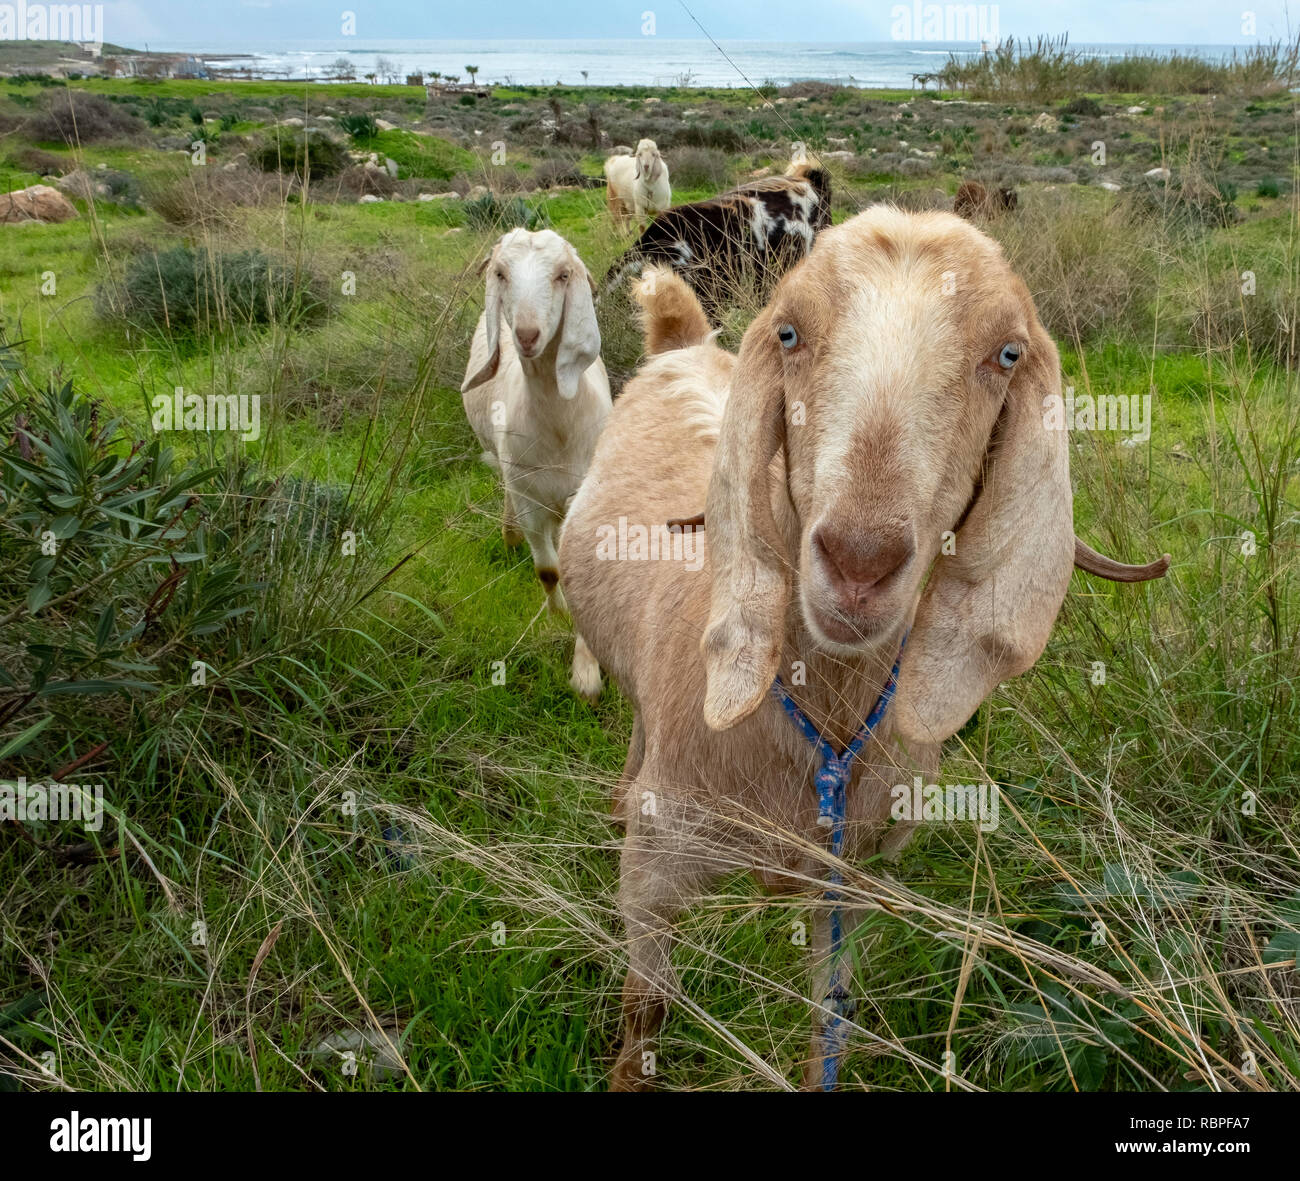 Inquisitive goats look at the camera in Paphos, Cyprus. - Stock Image